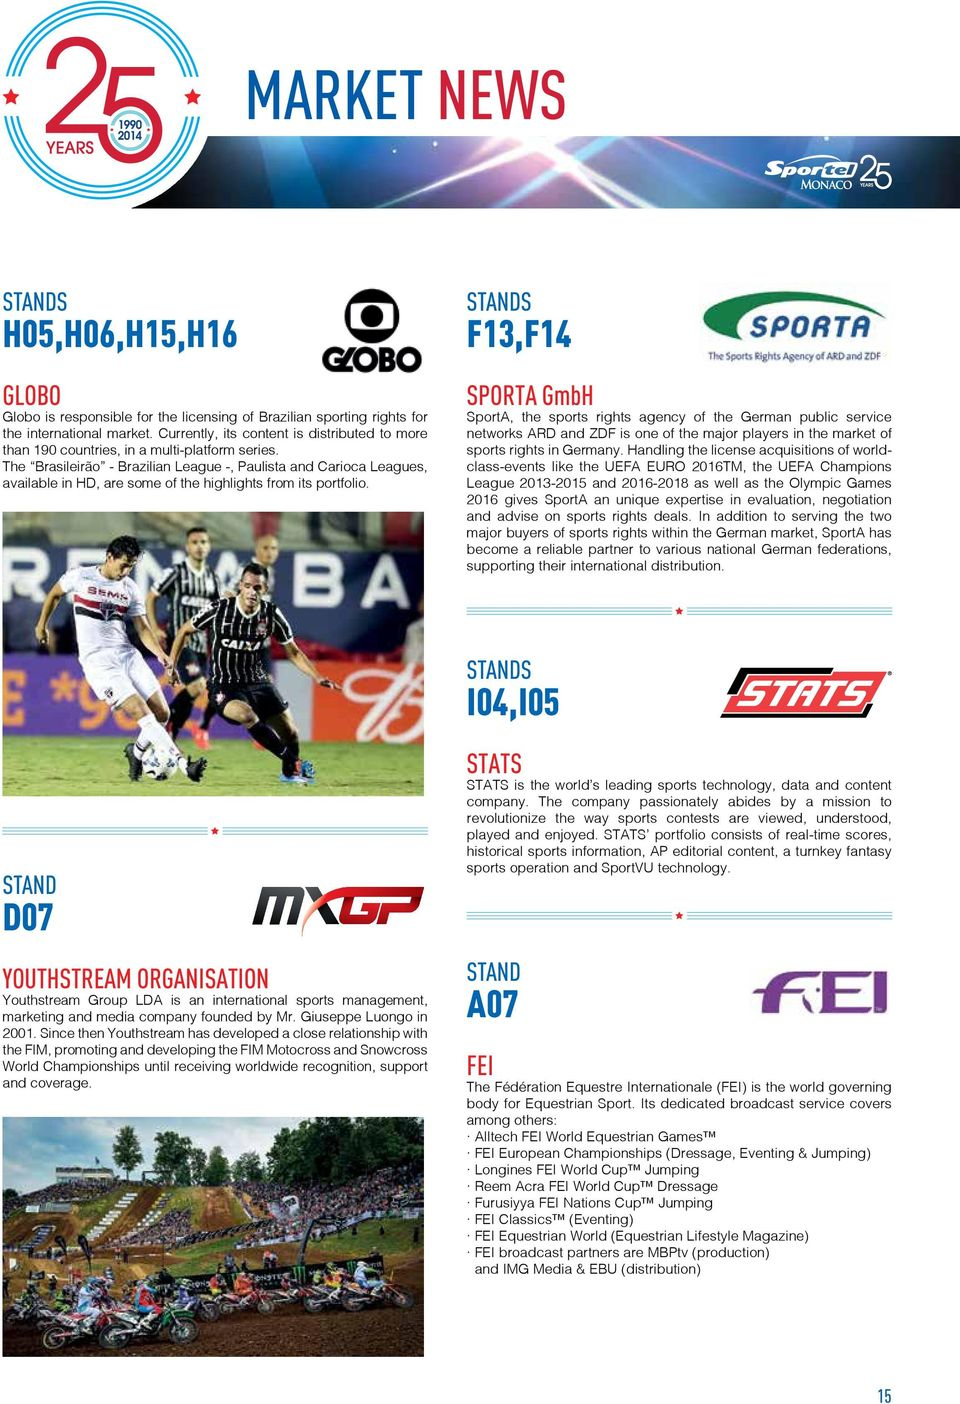 The Brasileirão - Brazilian League -, Paulista and Carioca Leagues, available in HD, are some of the highlights from its portfolio.